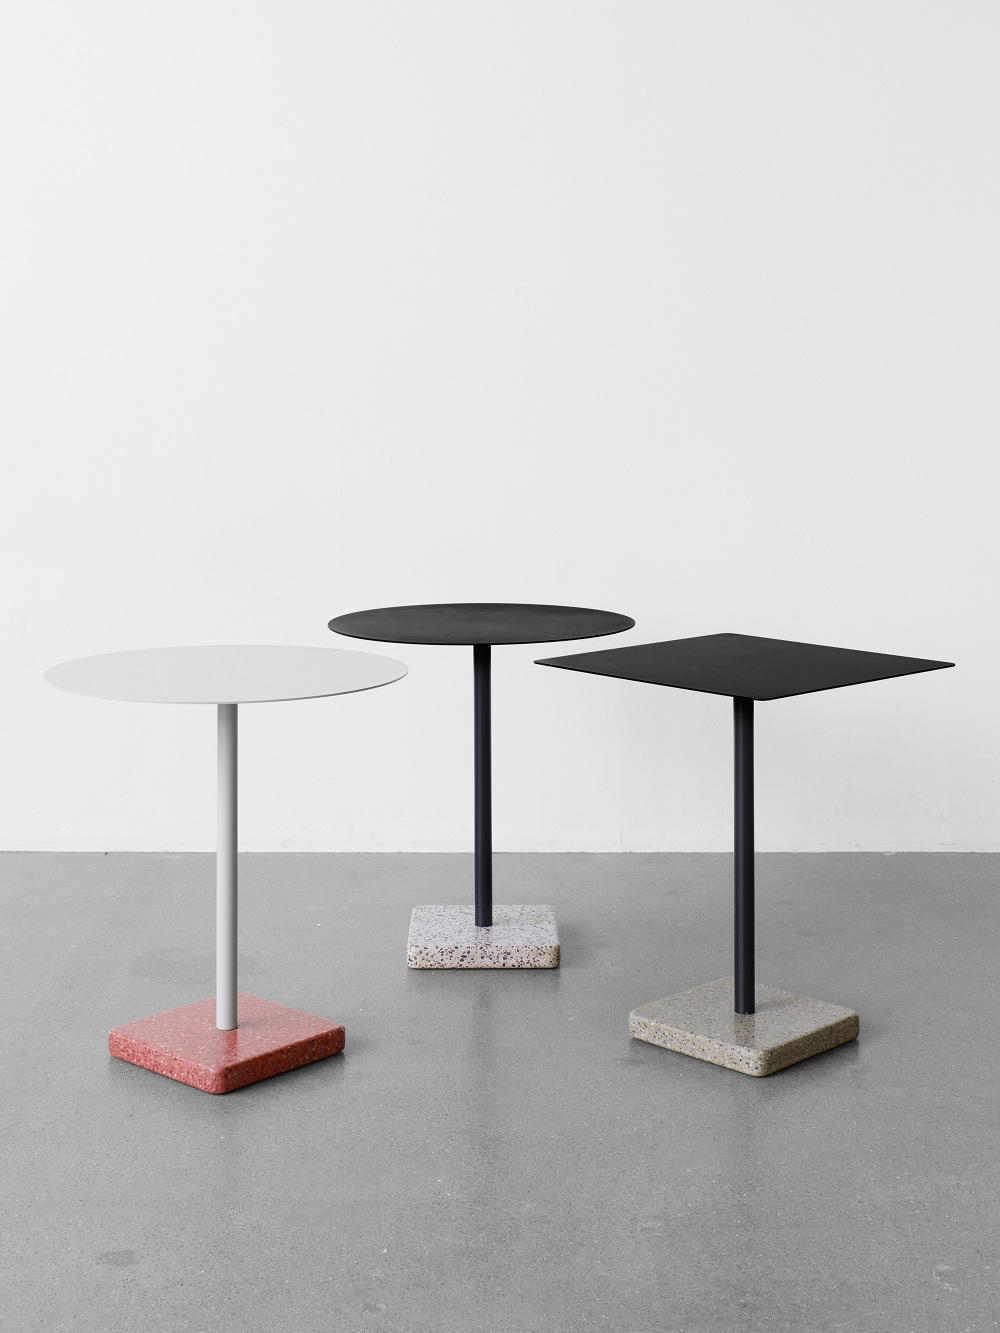 terrazzo table hay dk daniel enoksson studio. Black Bedroom Furniture Sets. Home Design Ideas